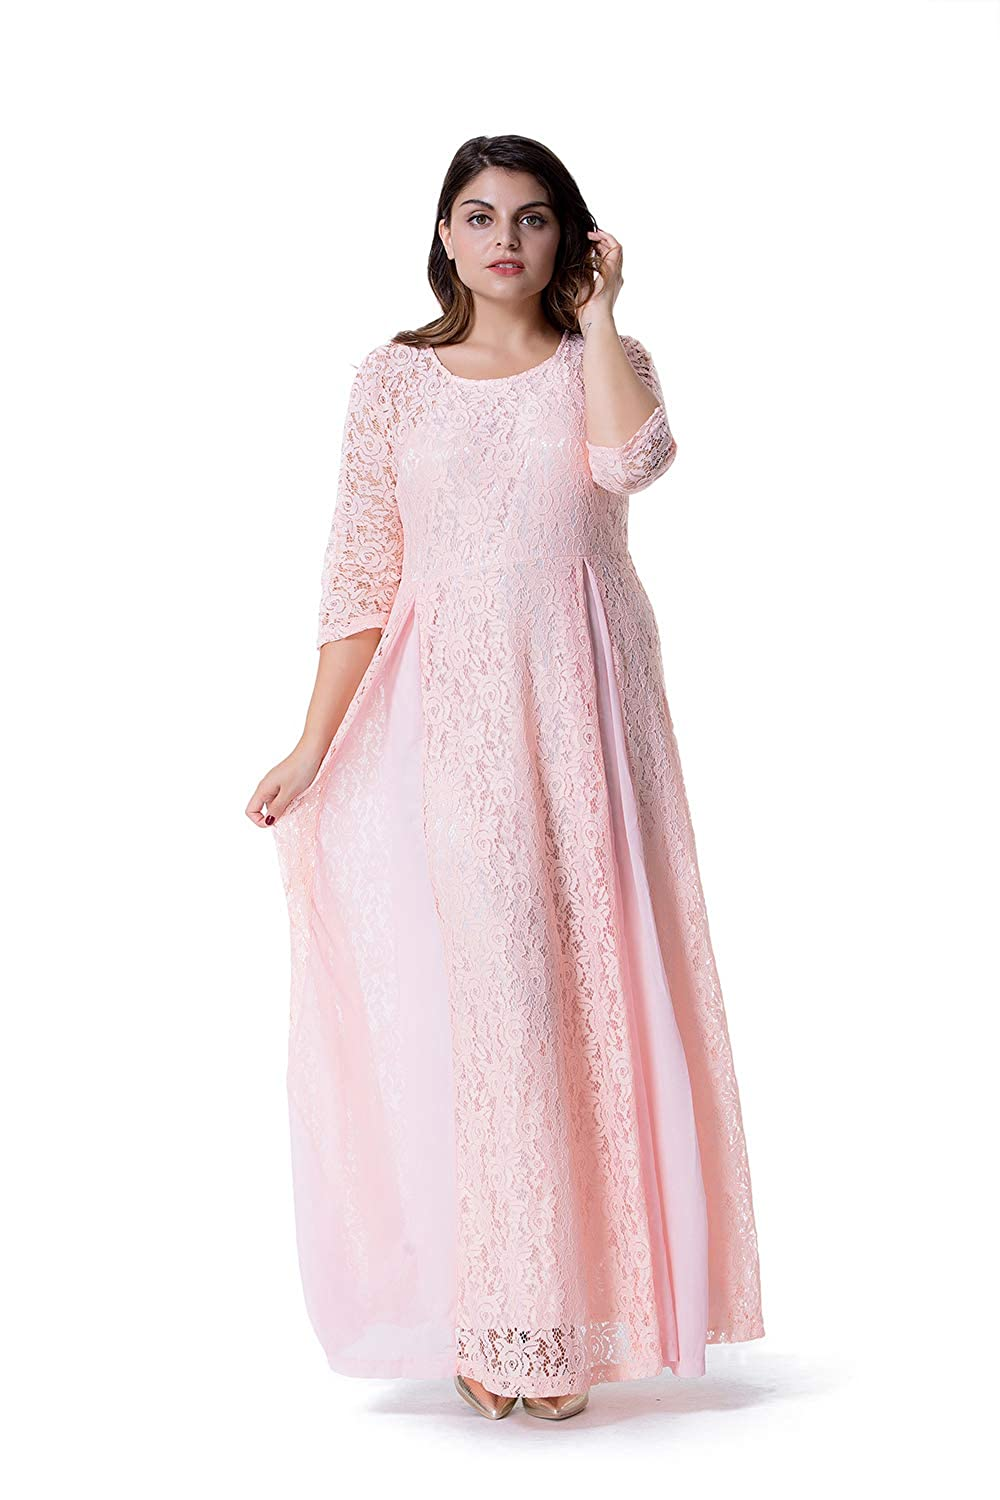 GMHO Women\'s Plus Size 3/4 Sleeve Lace Maxi Bridesmaid Dress Gown